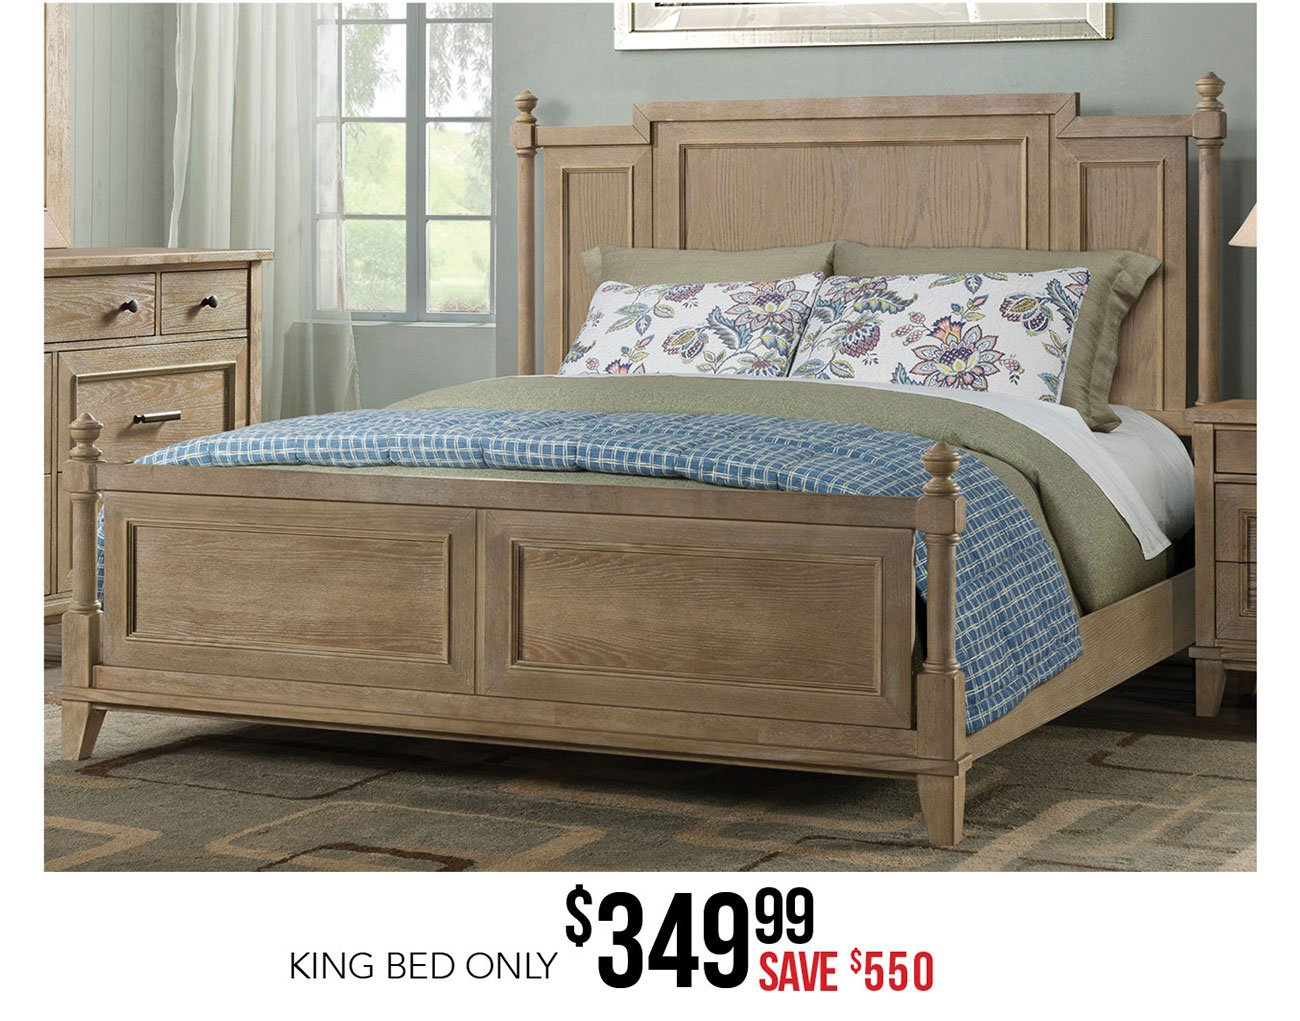 King-bed-only